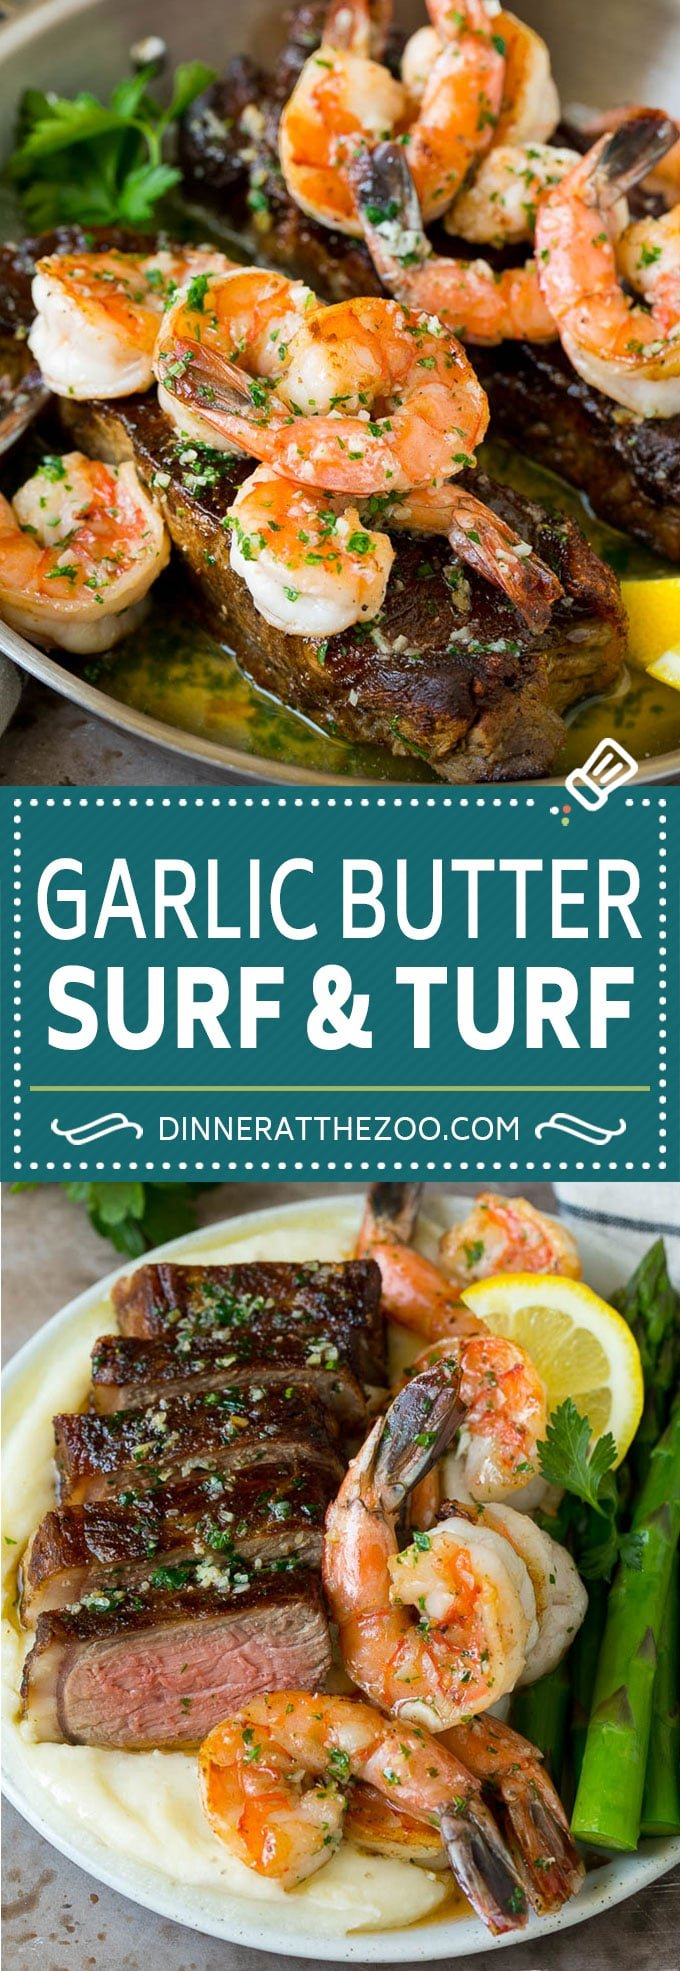 Surf and Turf Recipe | Seared Steak #steak #shrimp #keto #lowcarb #dinner #dinneratthezoo